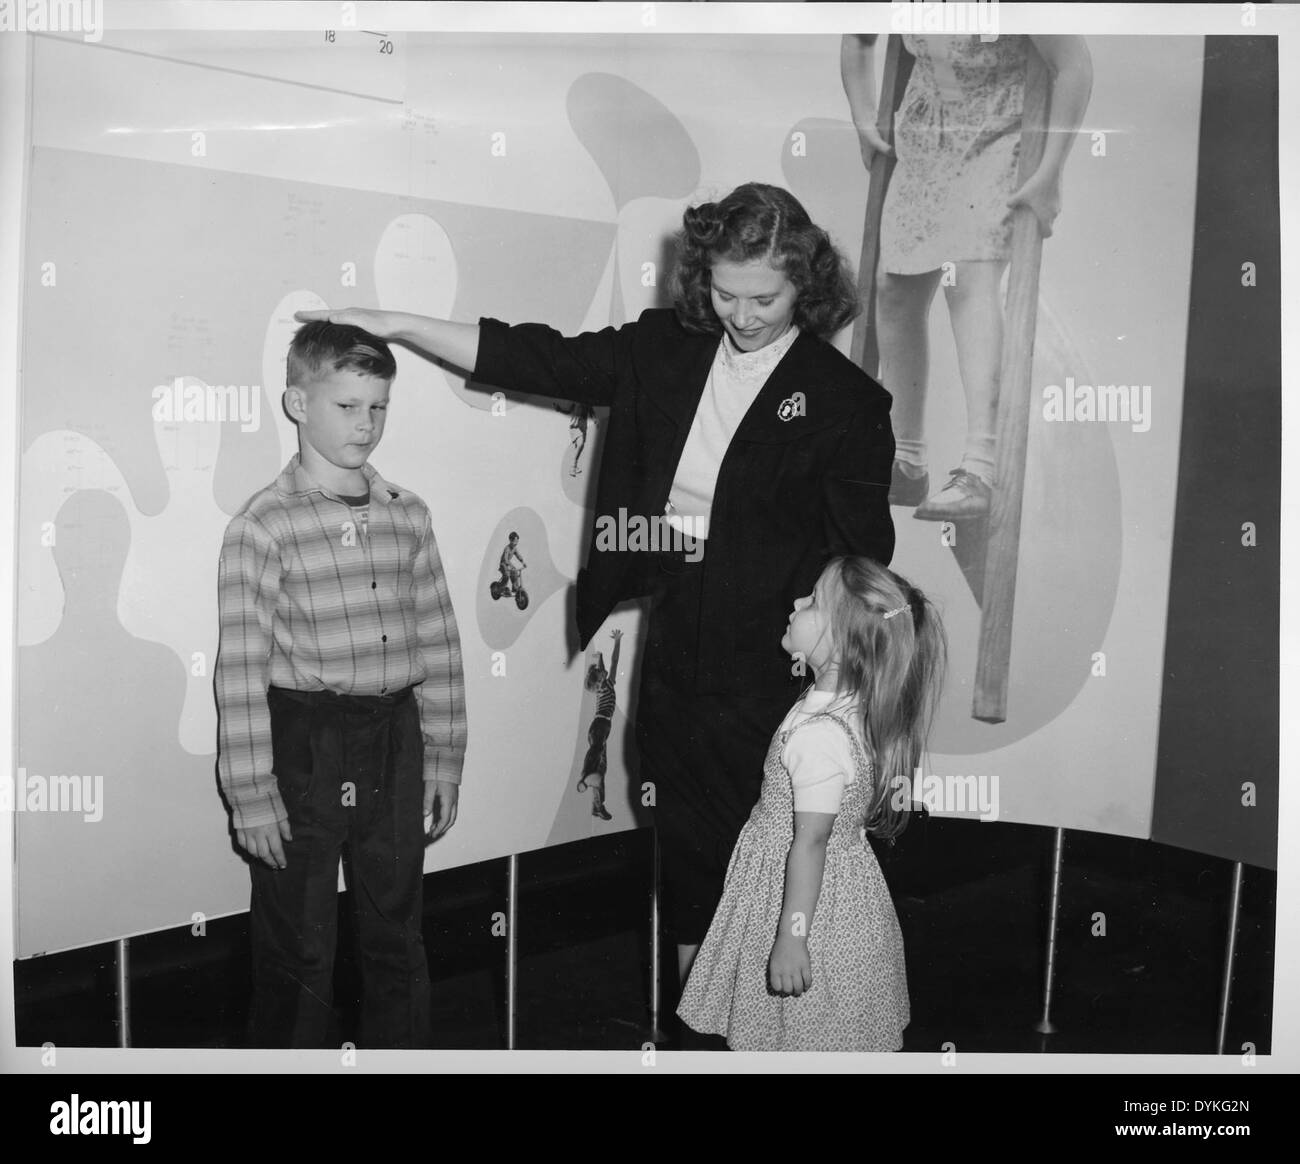 'How Tall Are You Exhibit,' Hall of Health, Arts & Industries Building - Stock Image